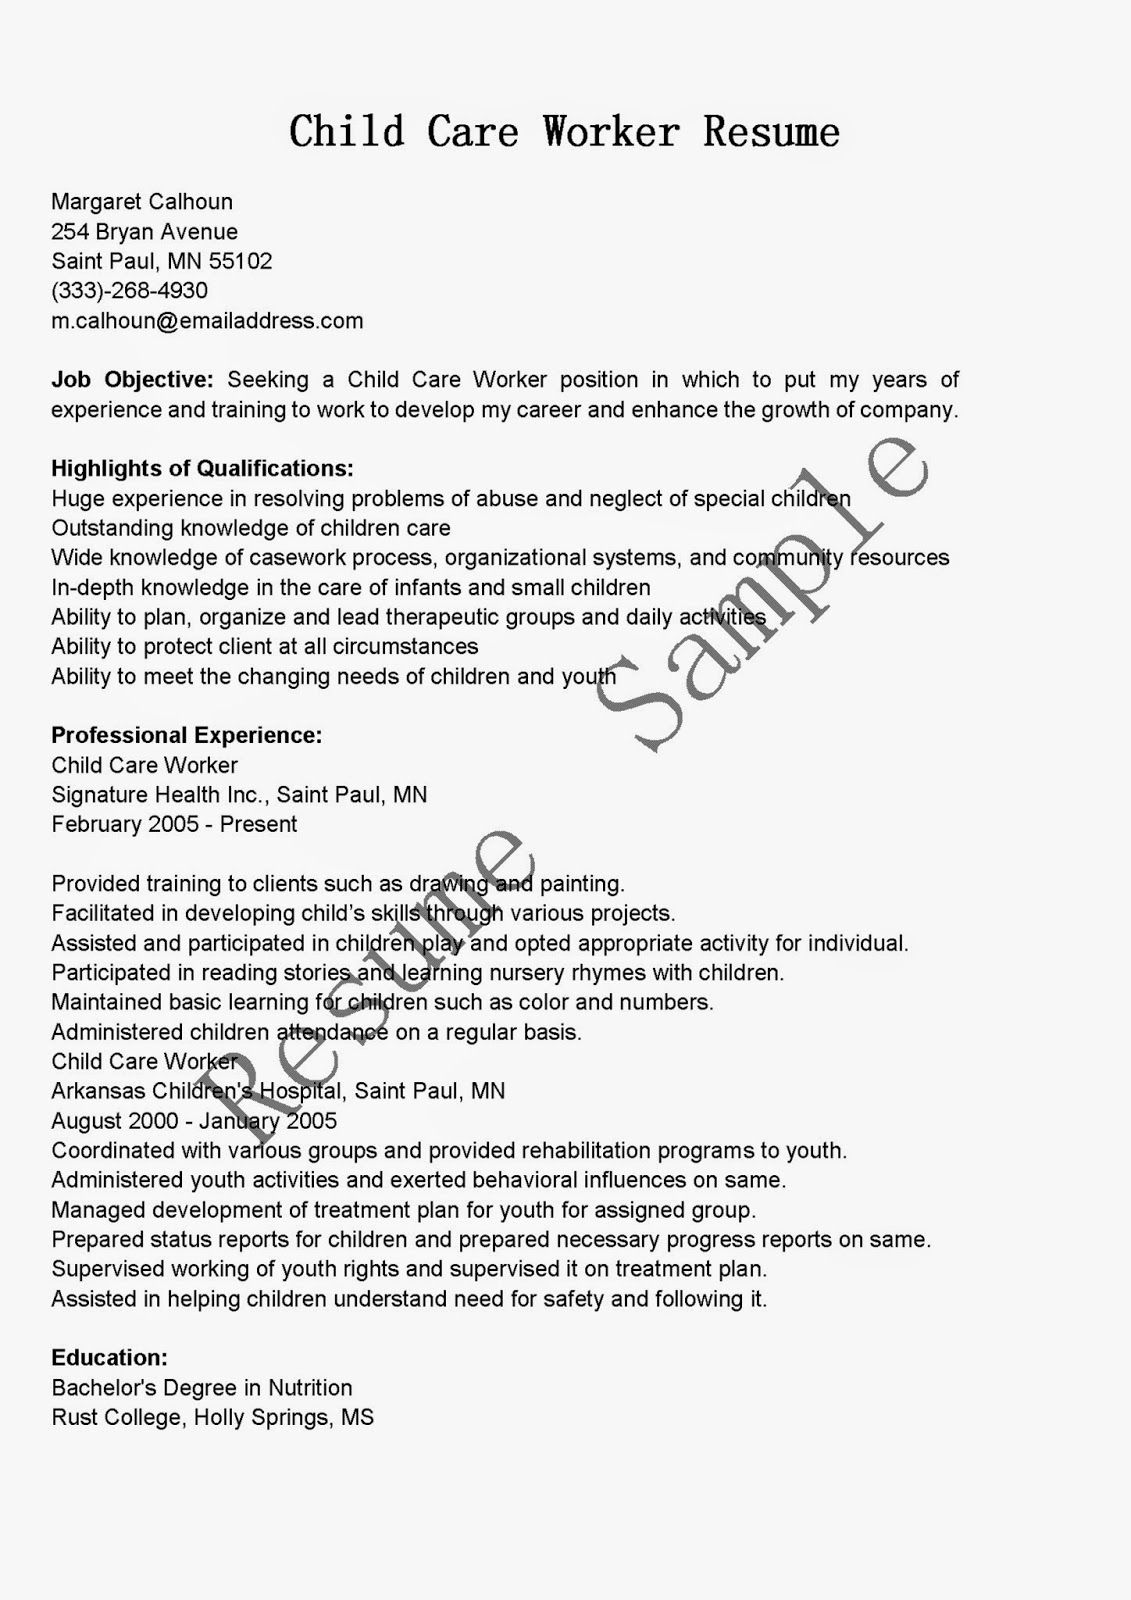 Child Care Provider Resume Resume Samples Child Care Worker Sample Tags Experience  Home .